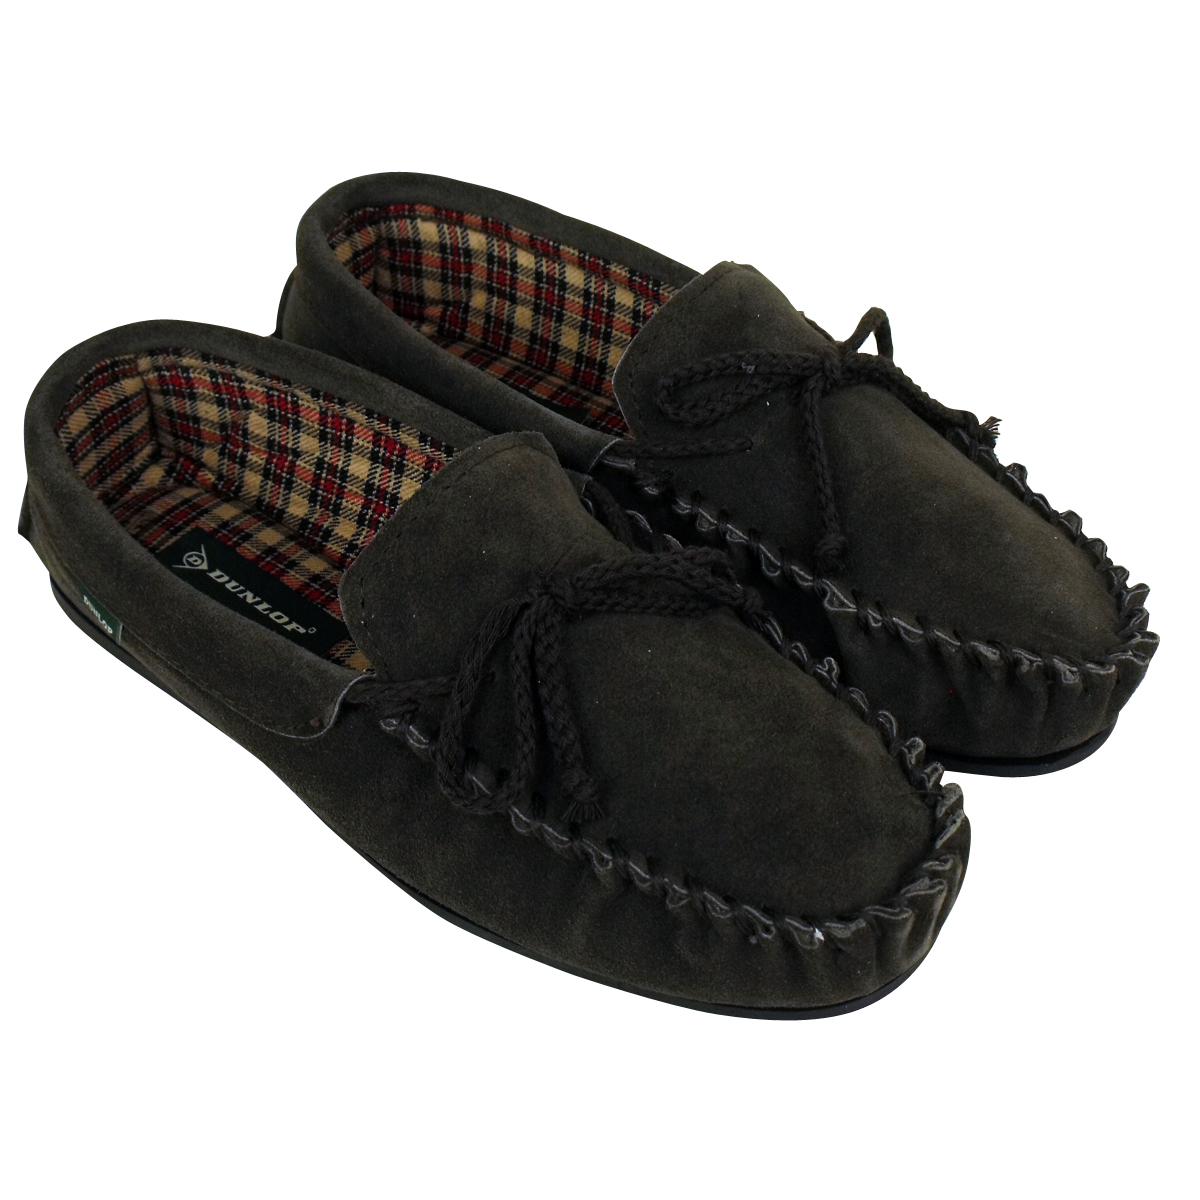 moccasin men You searched for: men leather moccasin etsy is the home to thousands of handmade, vintage, and one-of-a-kind products related to your search no matter what you're looking for or where you are in the world, our global marketplace of sellers can help you find unique and affordable options.